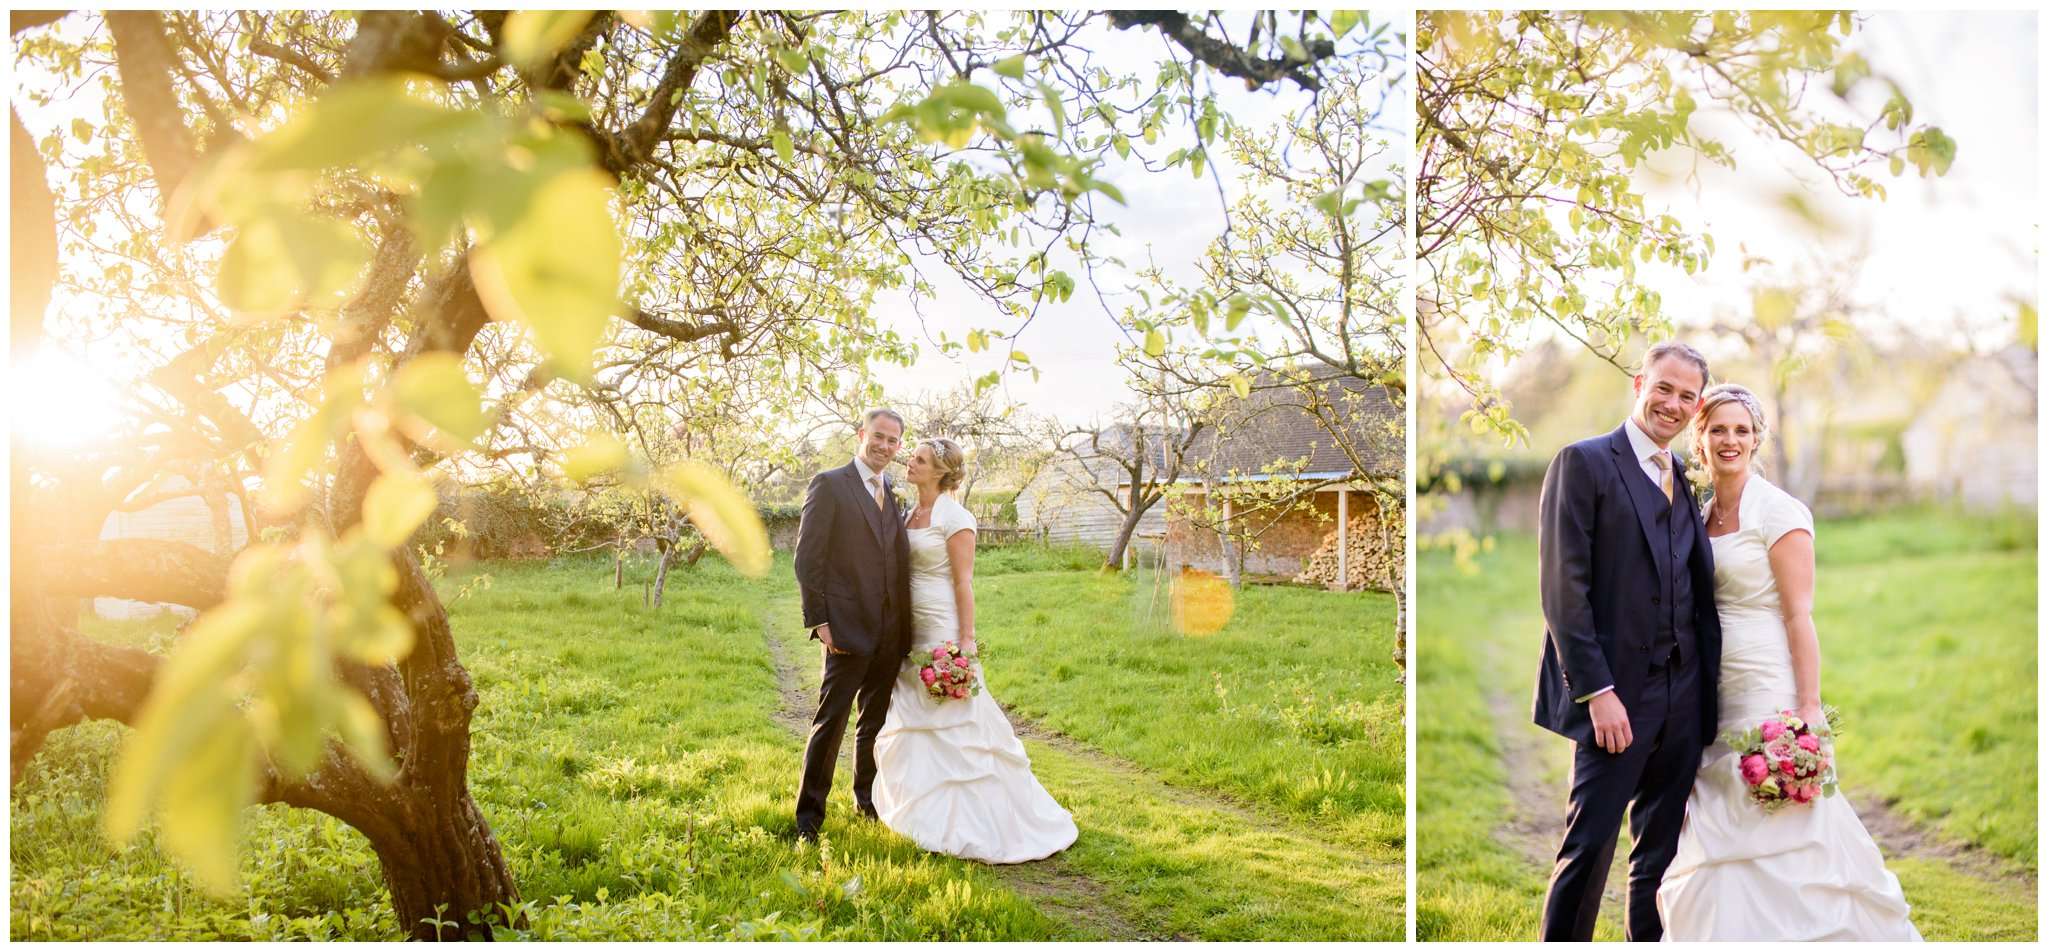 orchard country wedding at deans court wimborne dorset